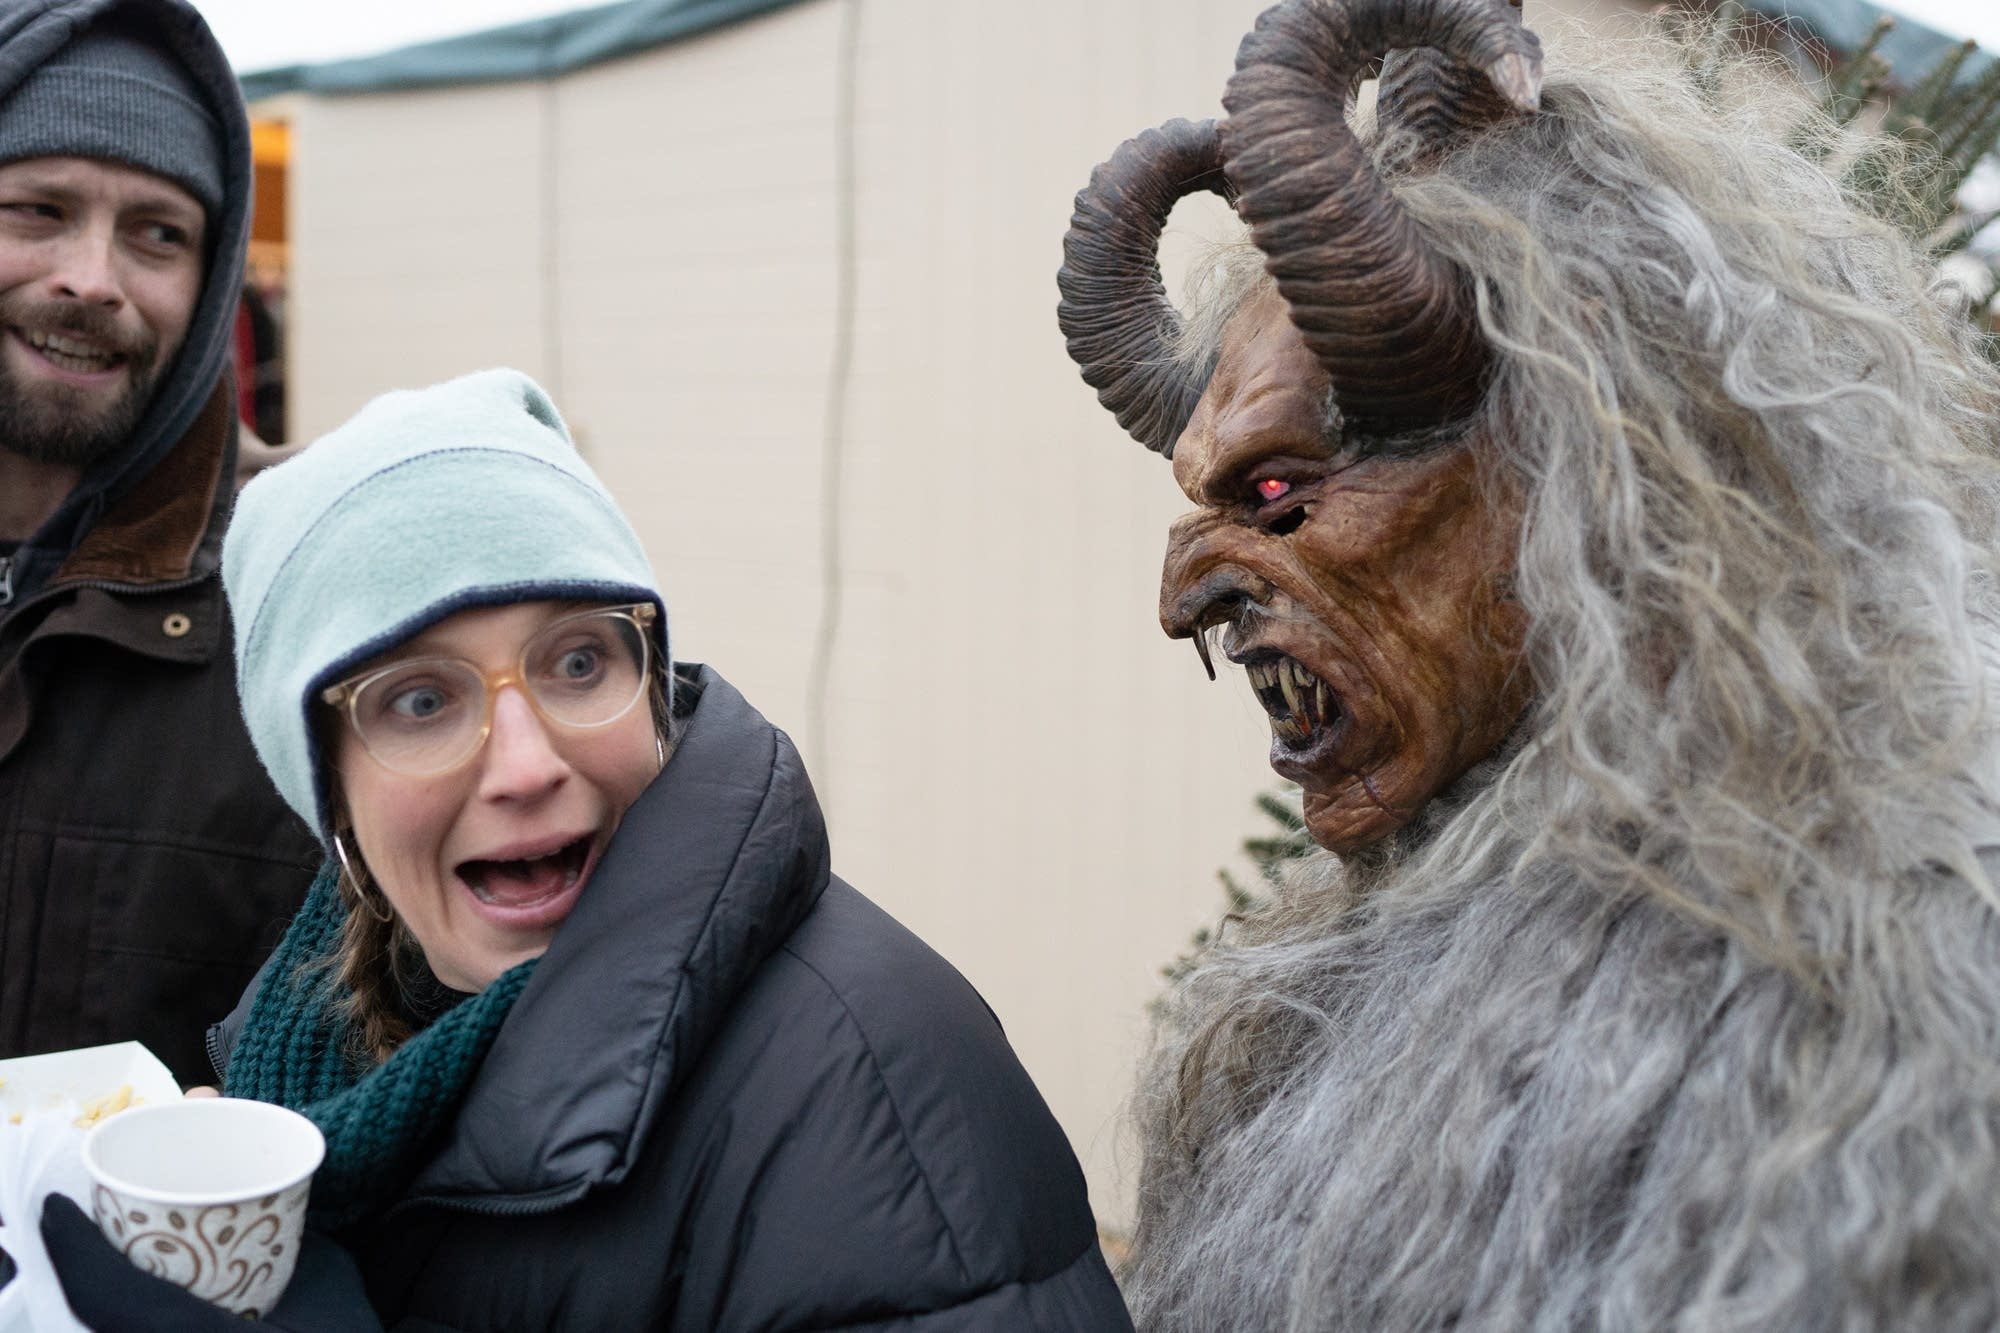 Ross Otto, dressed as Krampus, frightens Dylan Welch.